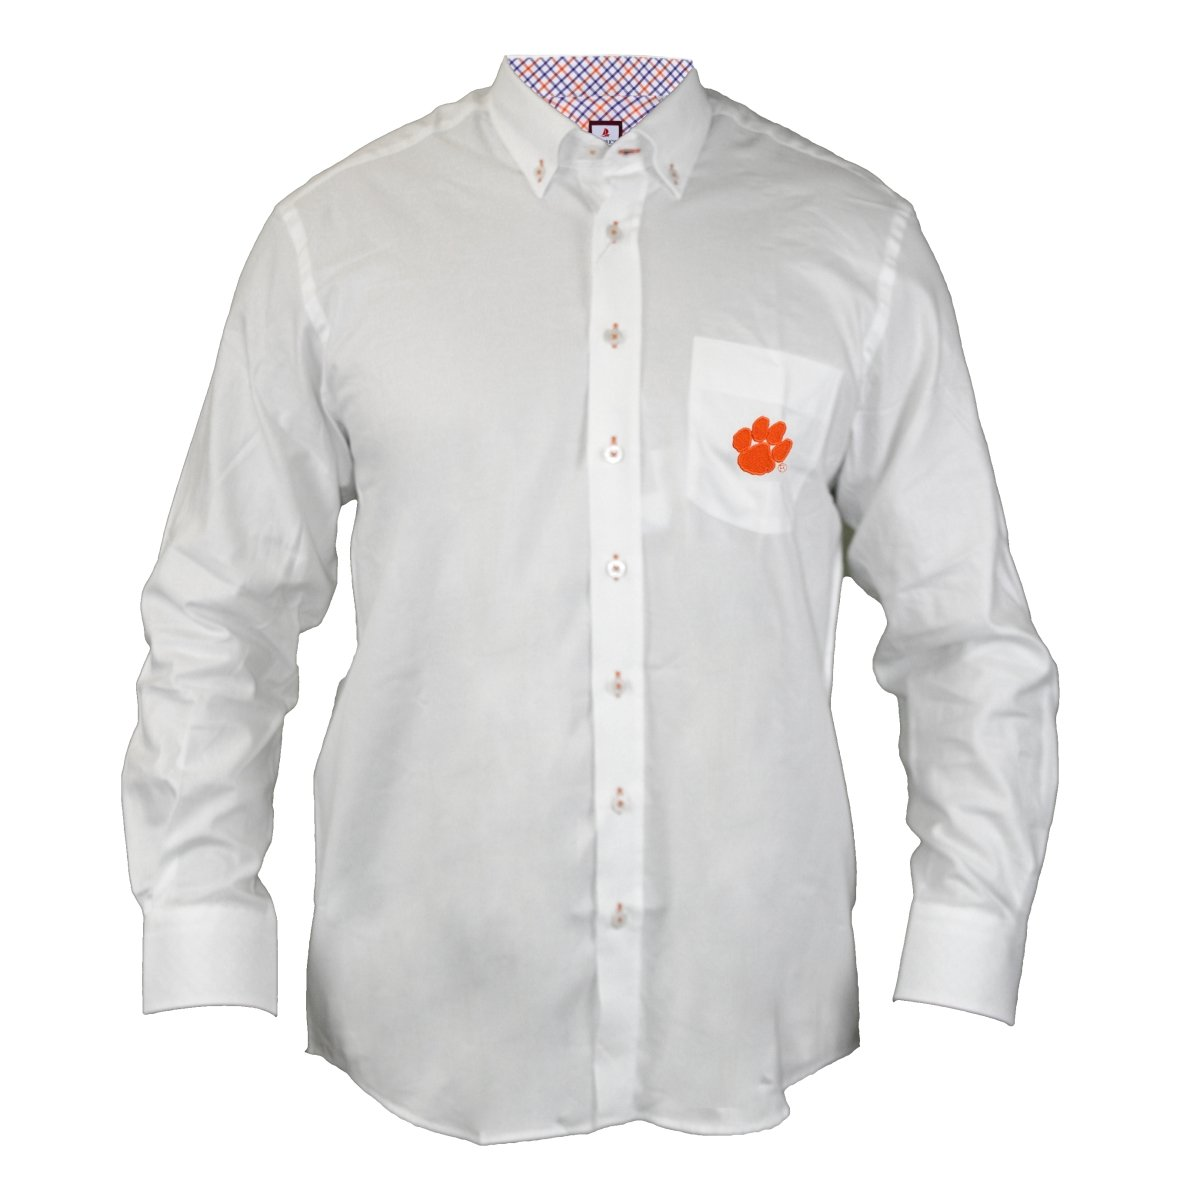 Gingham Dress Shirt Orange Paw - Mr. Knickerbocker